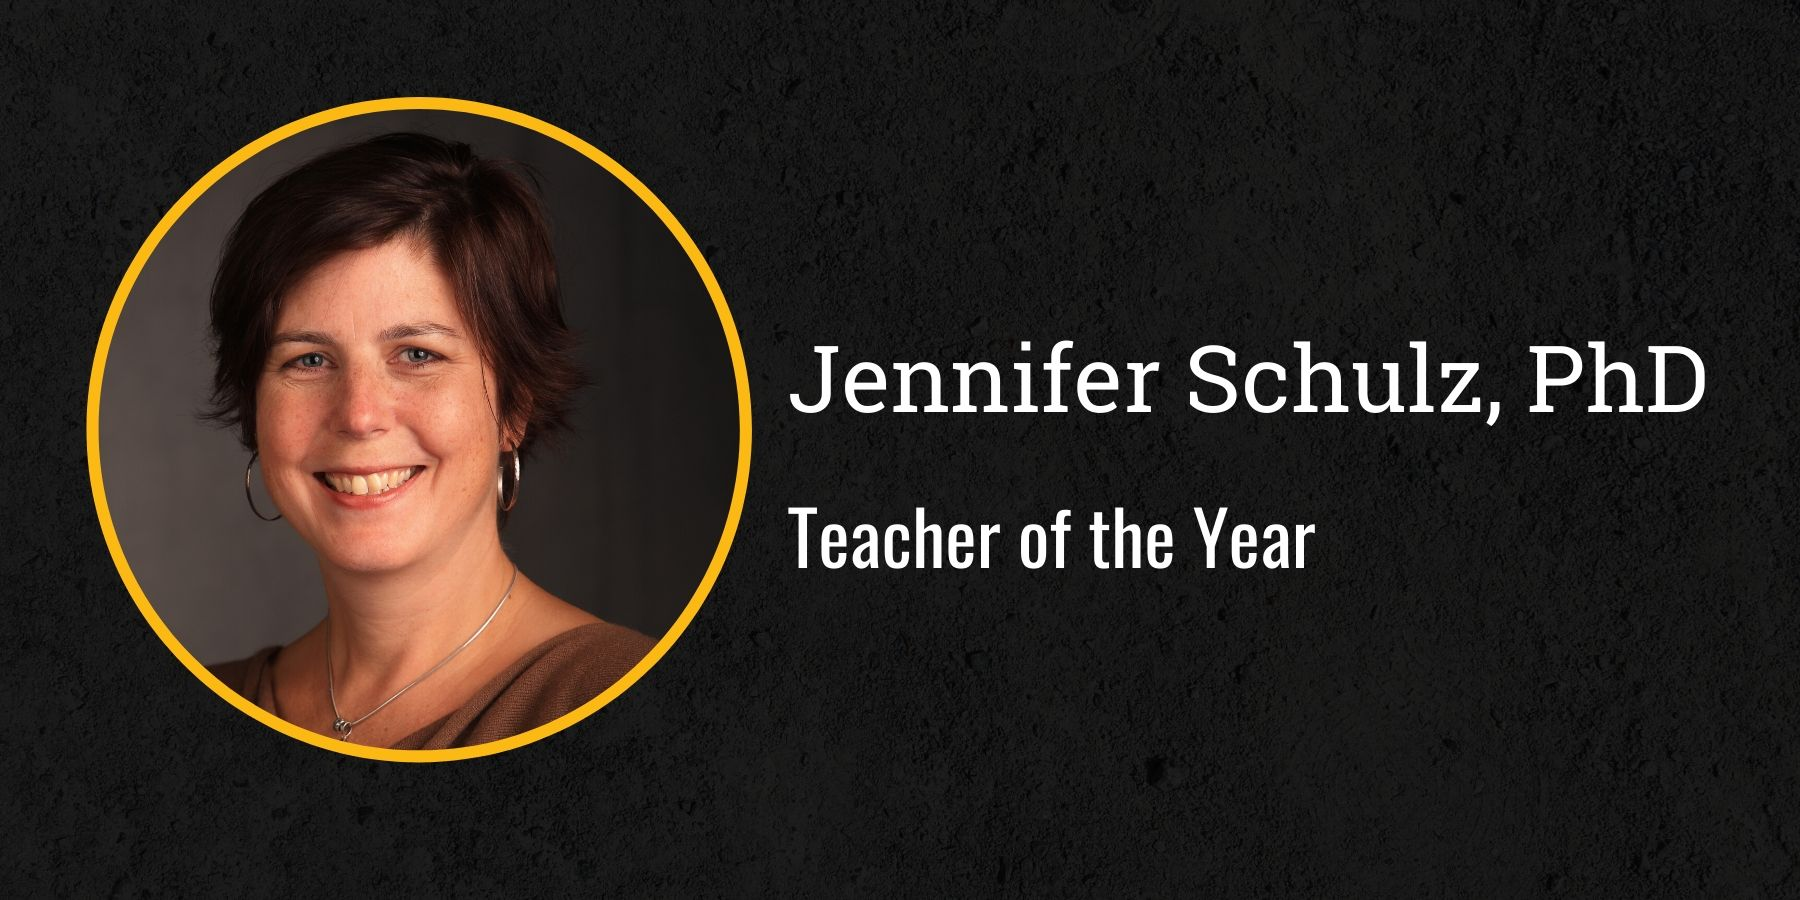 Photo of Jennifer Schulz and text Teacher of the Year